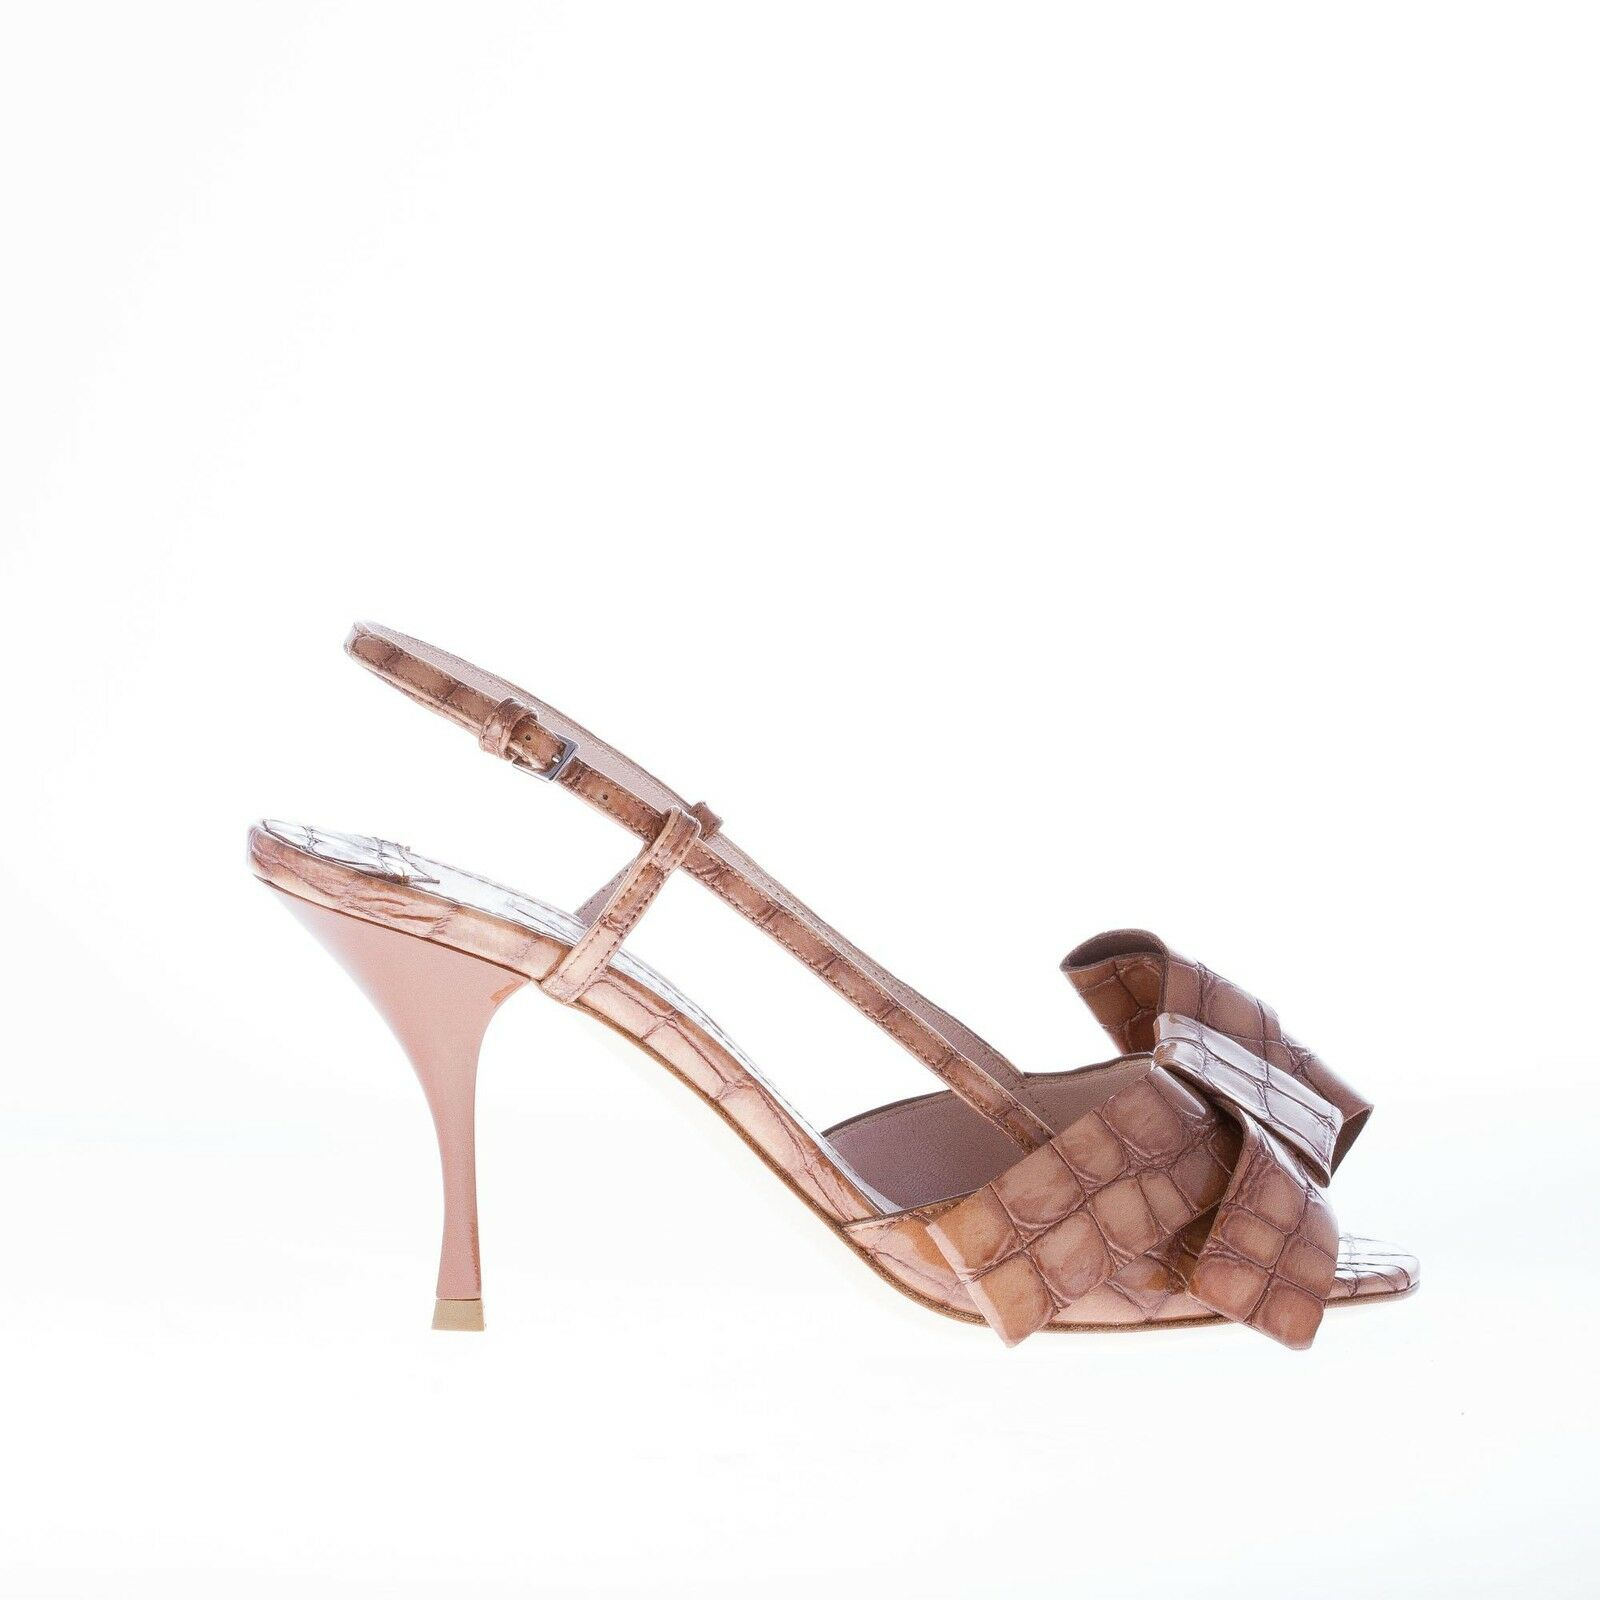 MIU MIU femmes chaussures marron croco embossed patent leather sandal with adorning bow